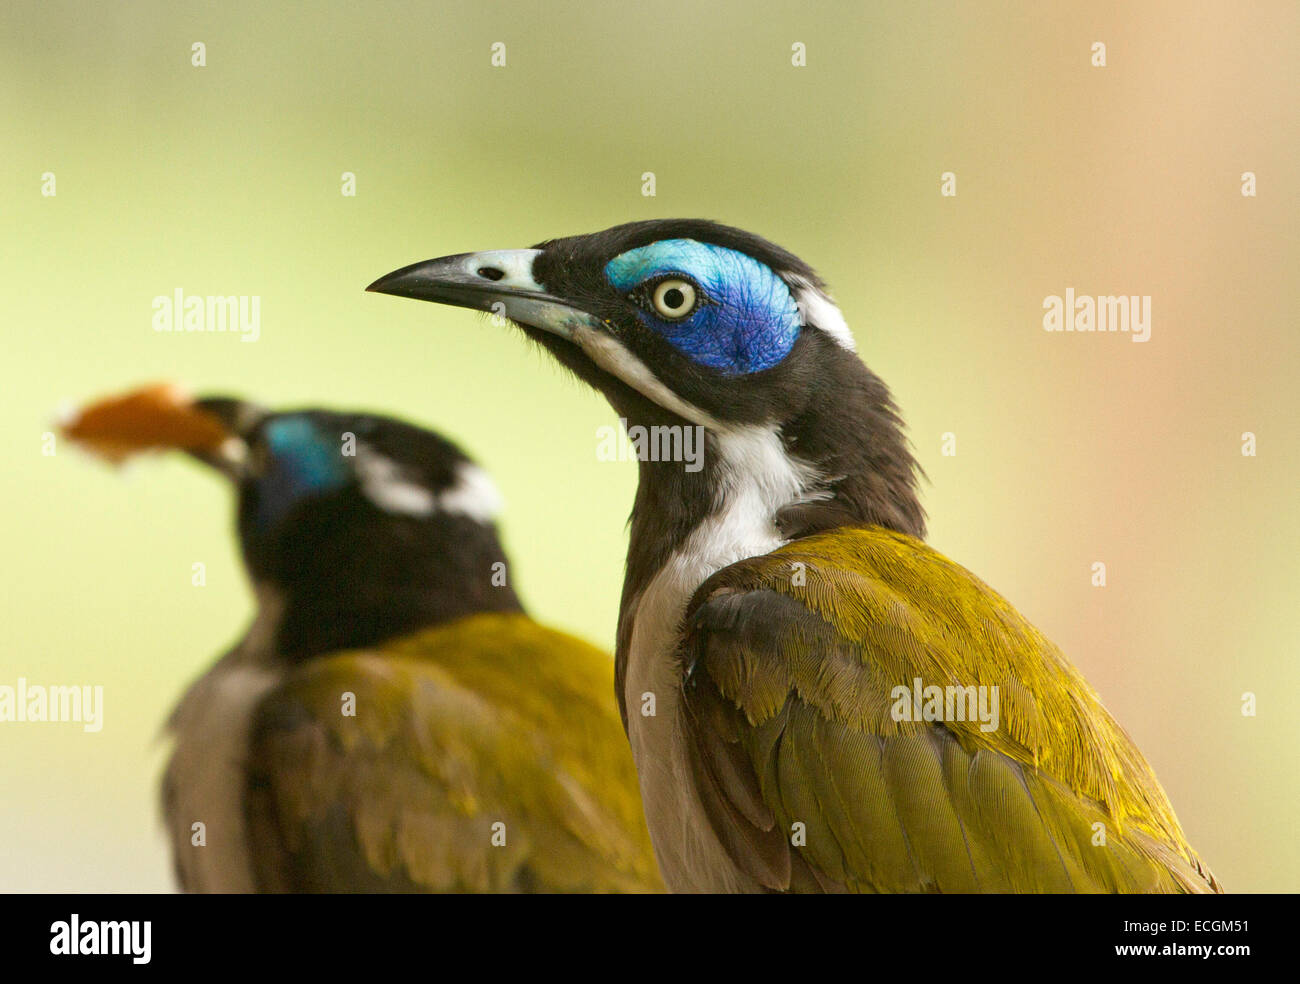 Close up of Australian blue-faced honeyeater, Entomyzon cyanotis, in the wild with second bird in distance against Stock Photo